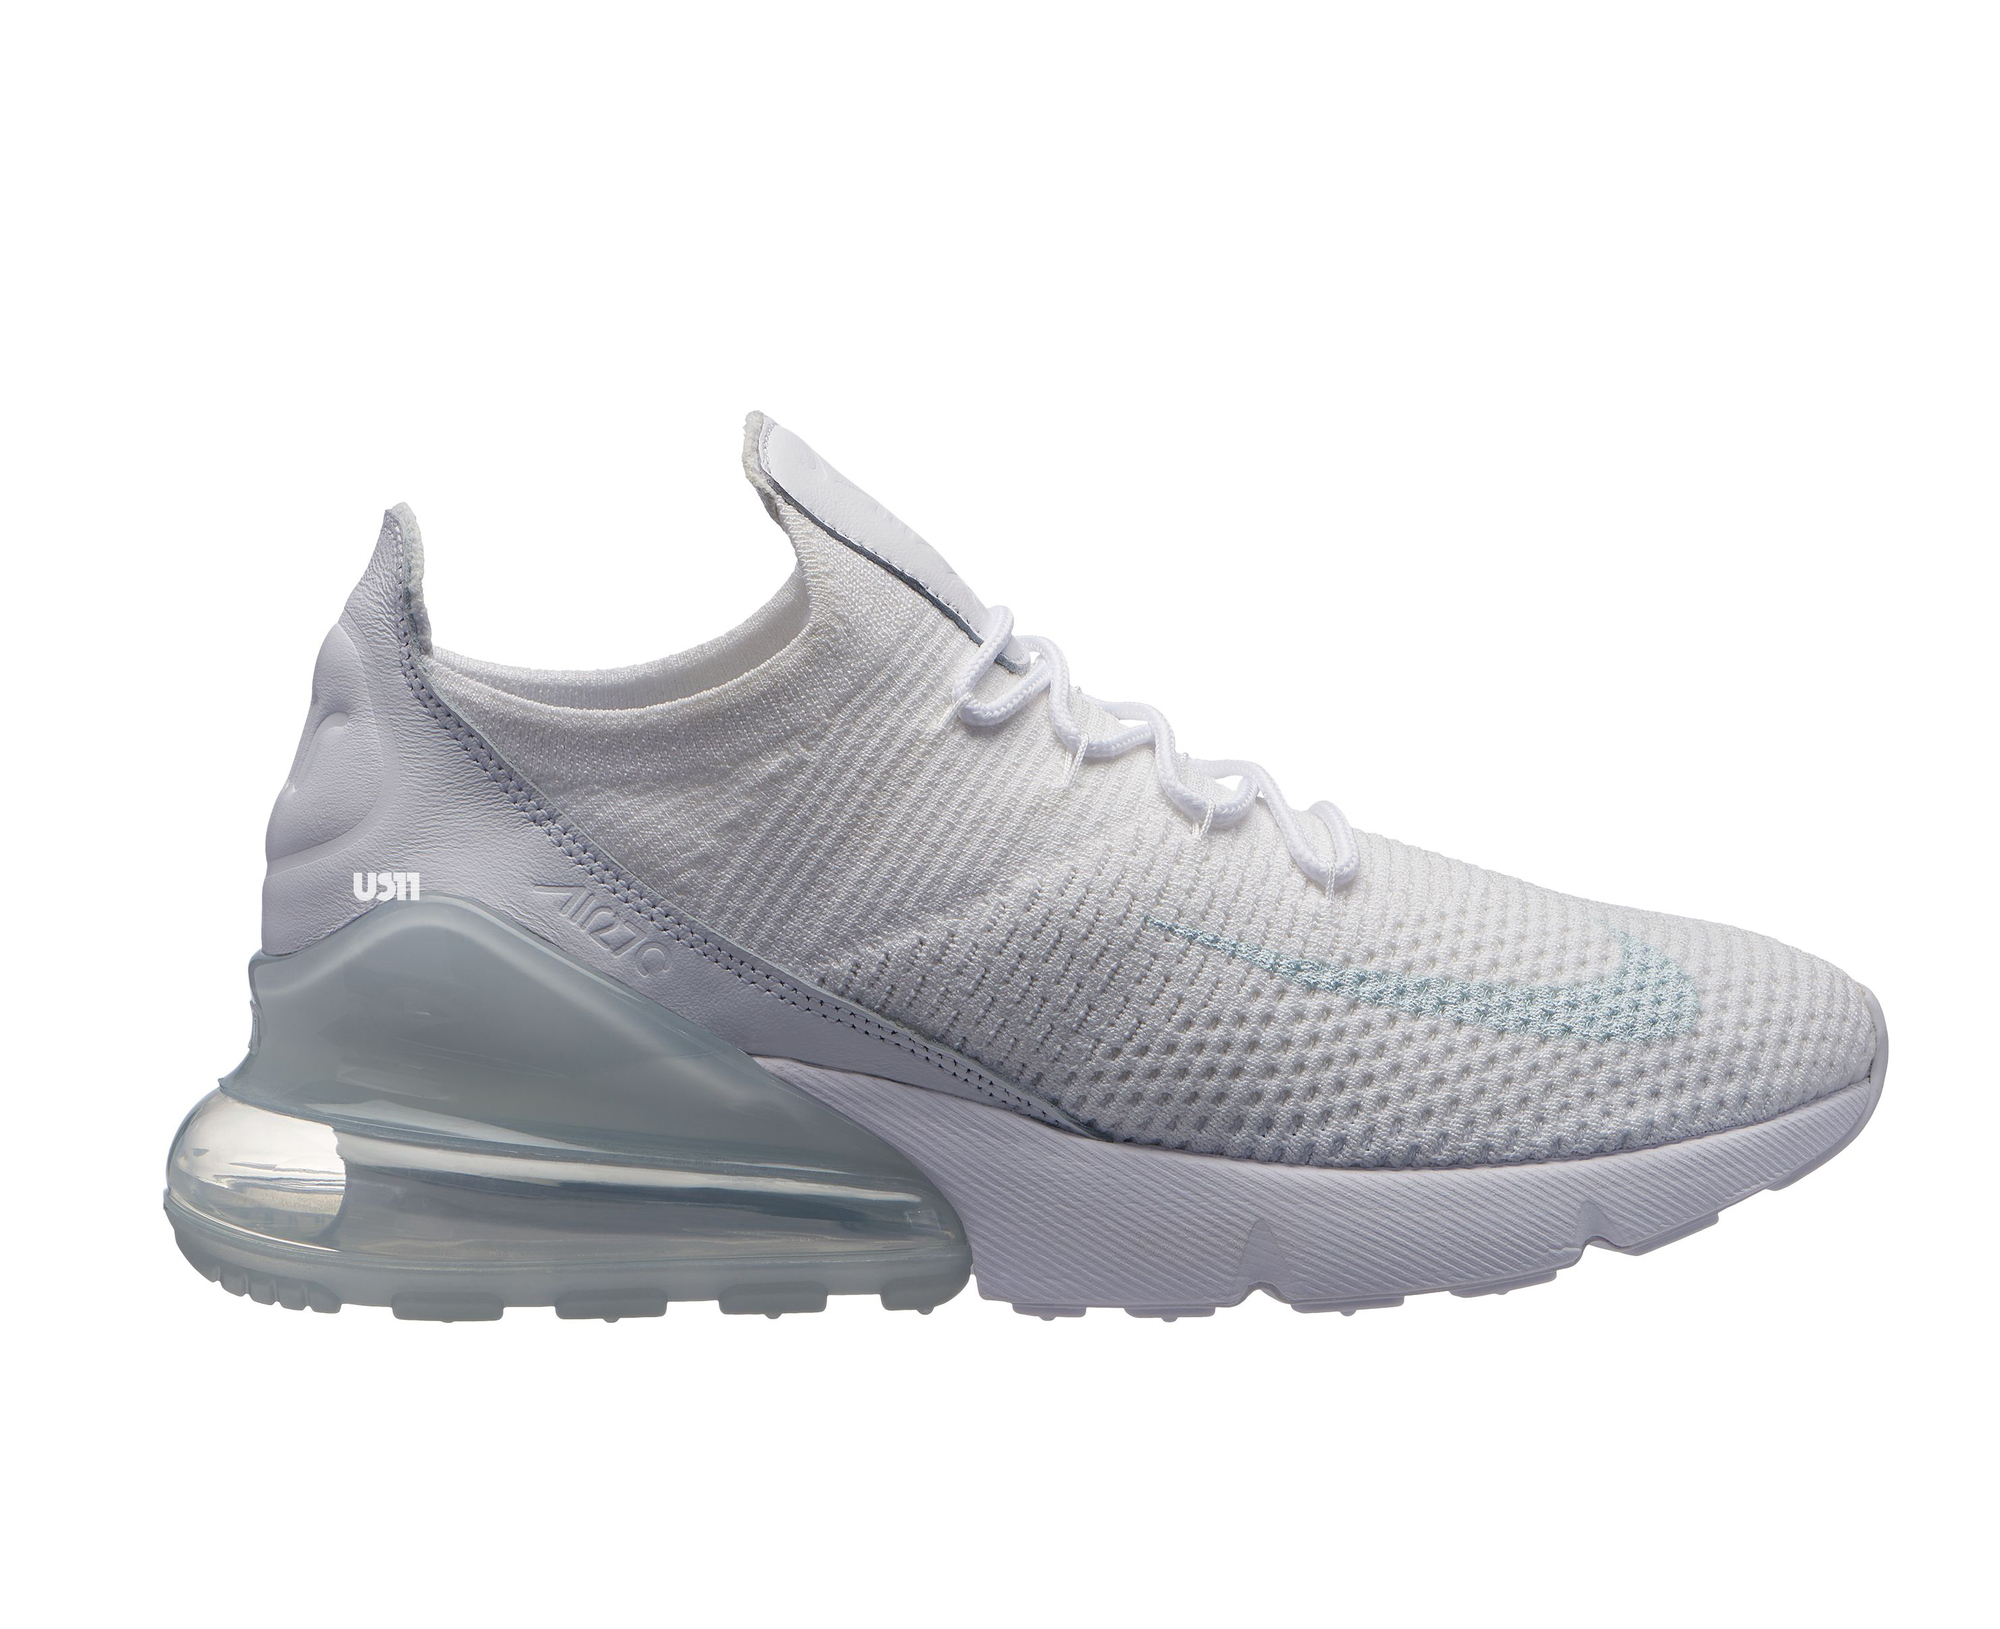 new product bf1a6 941de What's Next for the Air Max 270 Flyknit? - WearTesters